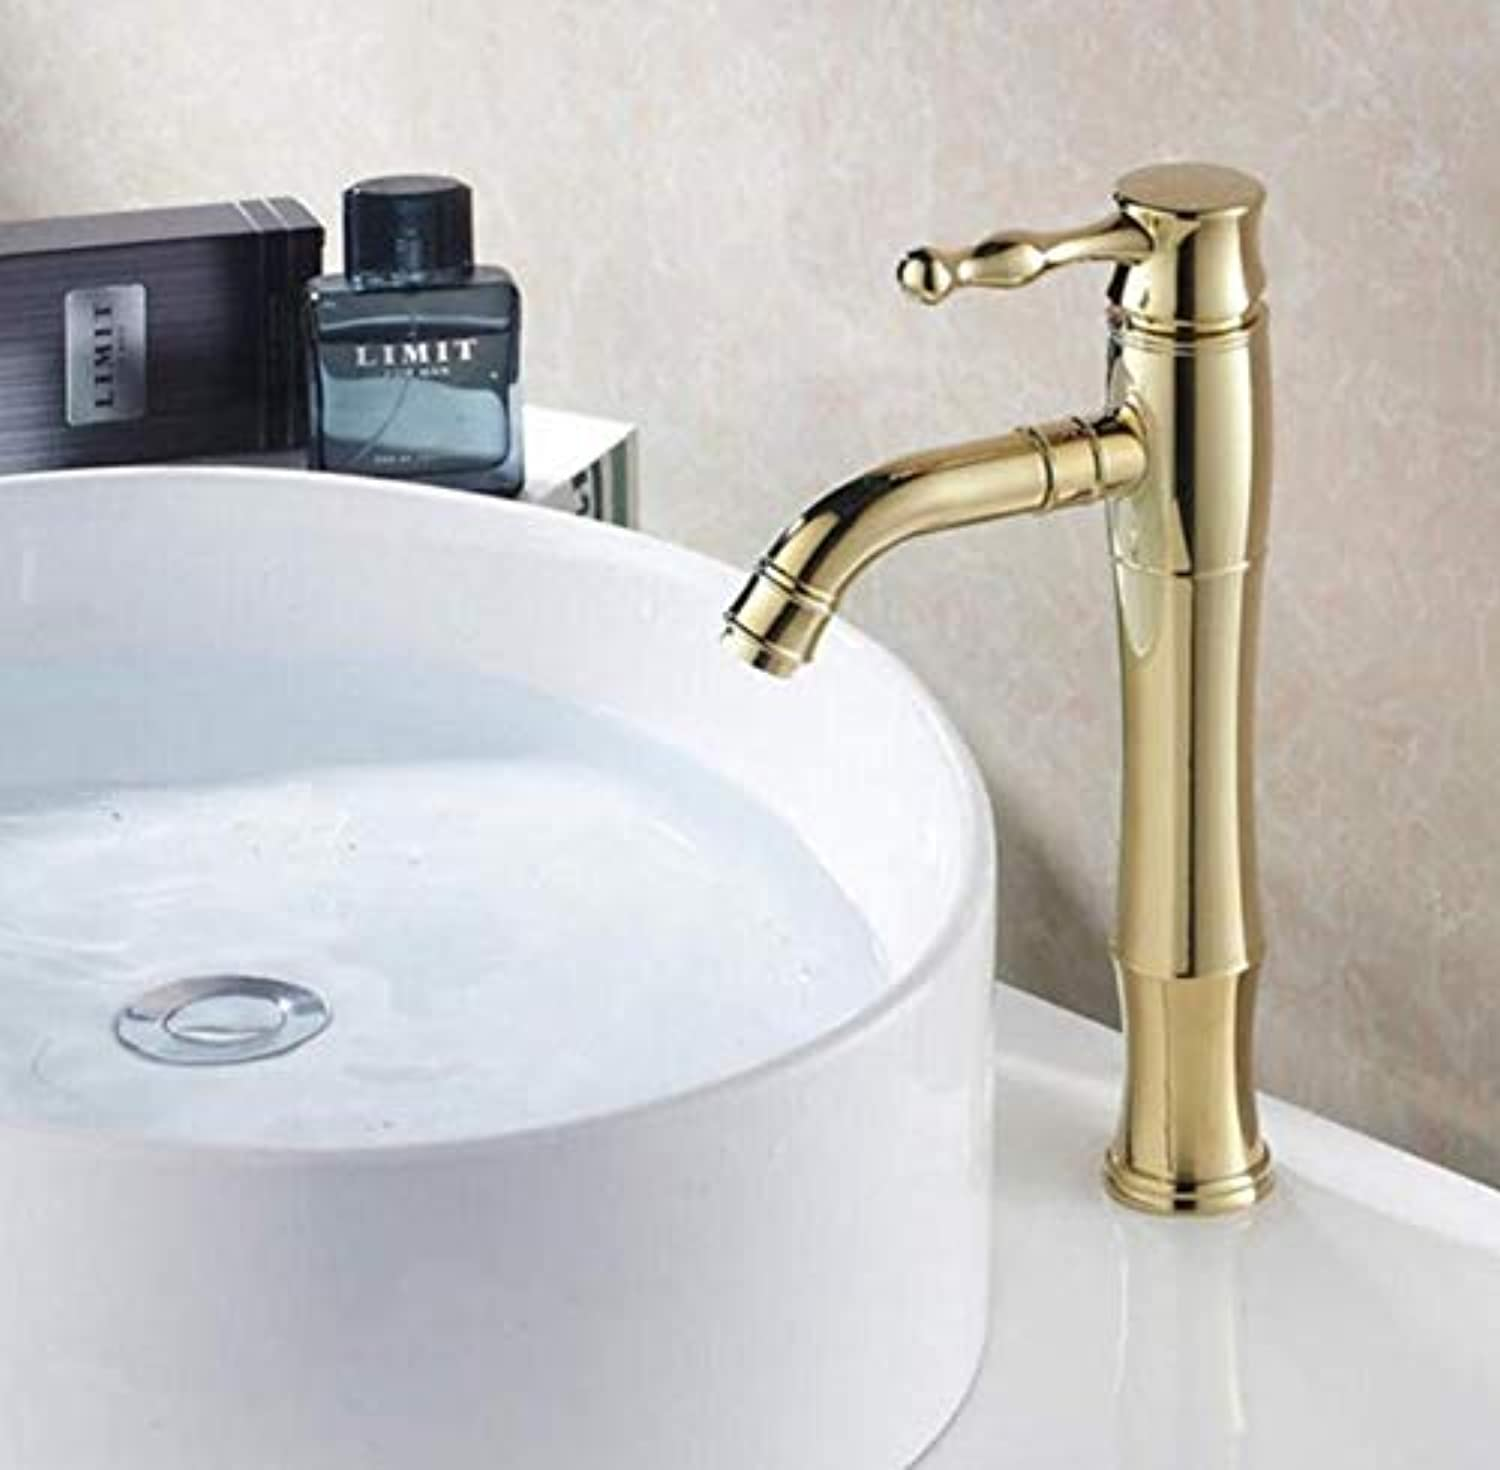 Brass Wall Faucet Chrome Brass Faucetmounted Single Handle Hot and Cold Water Faucets golden Brass Tap